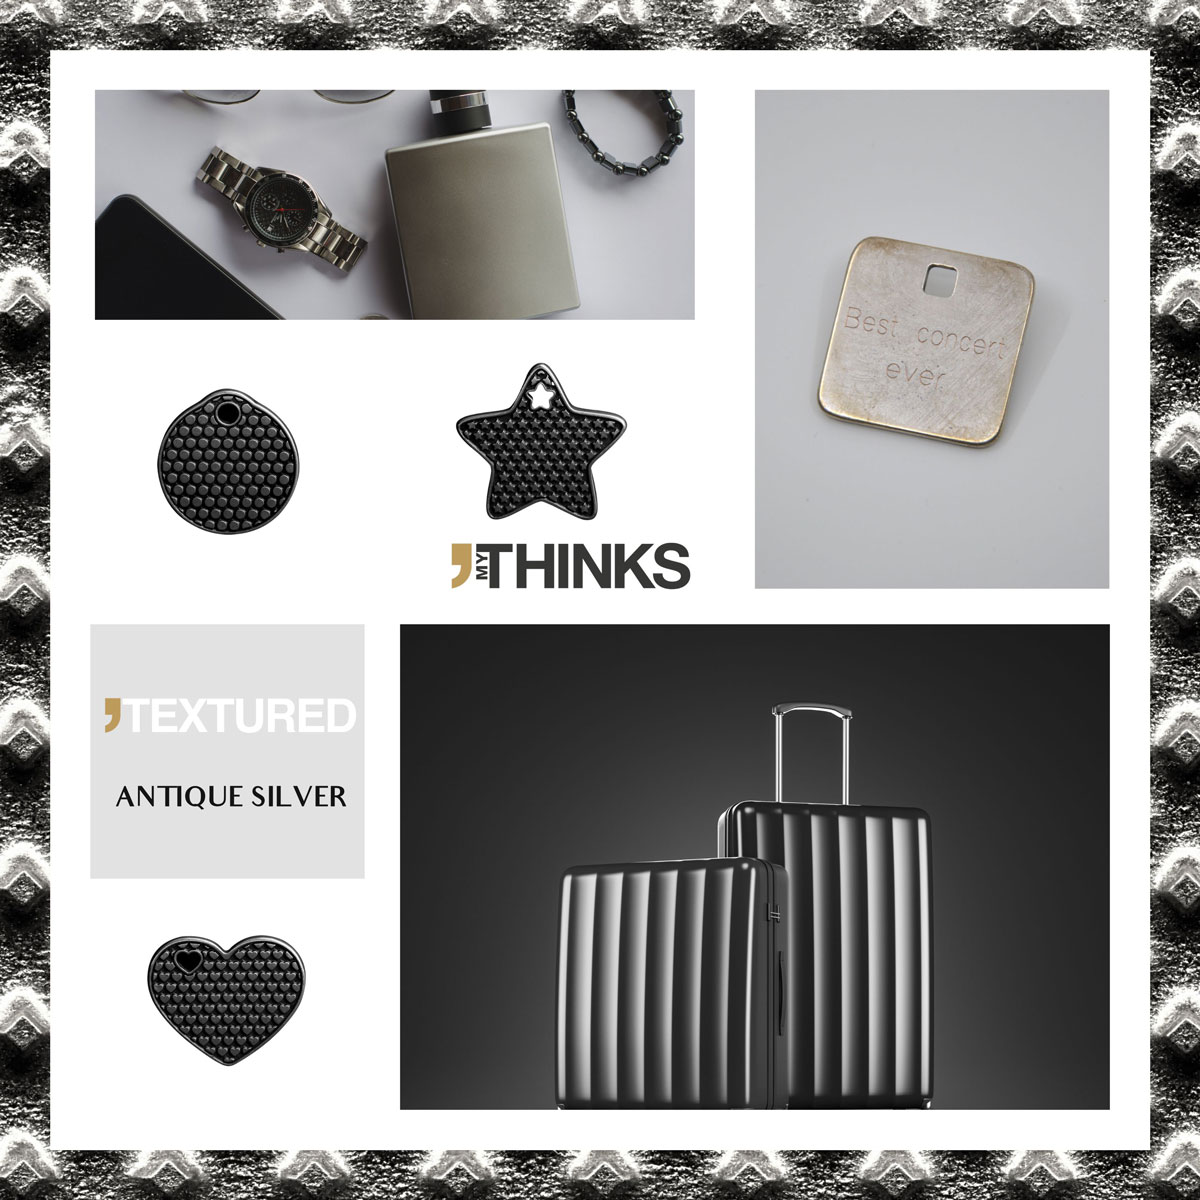 Mood board Textured collection gifts with Antique Silver finish on zamak medal personalized for perfume and luggage markets